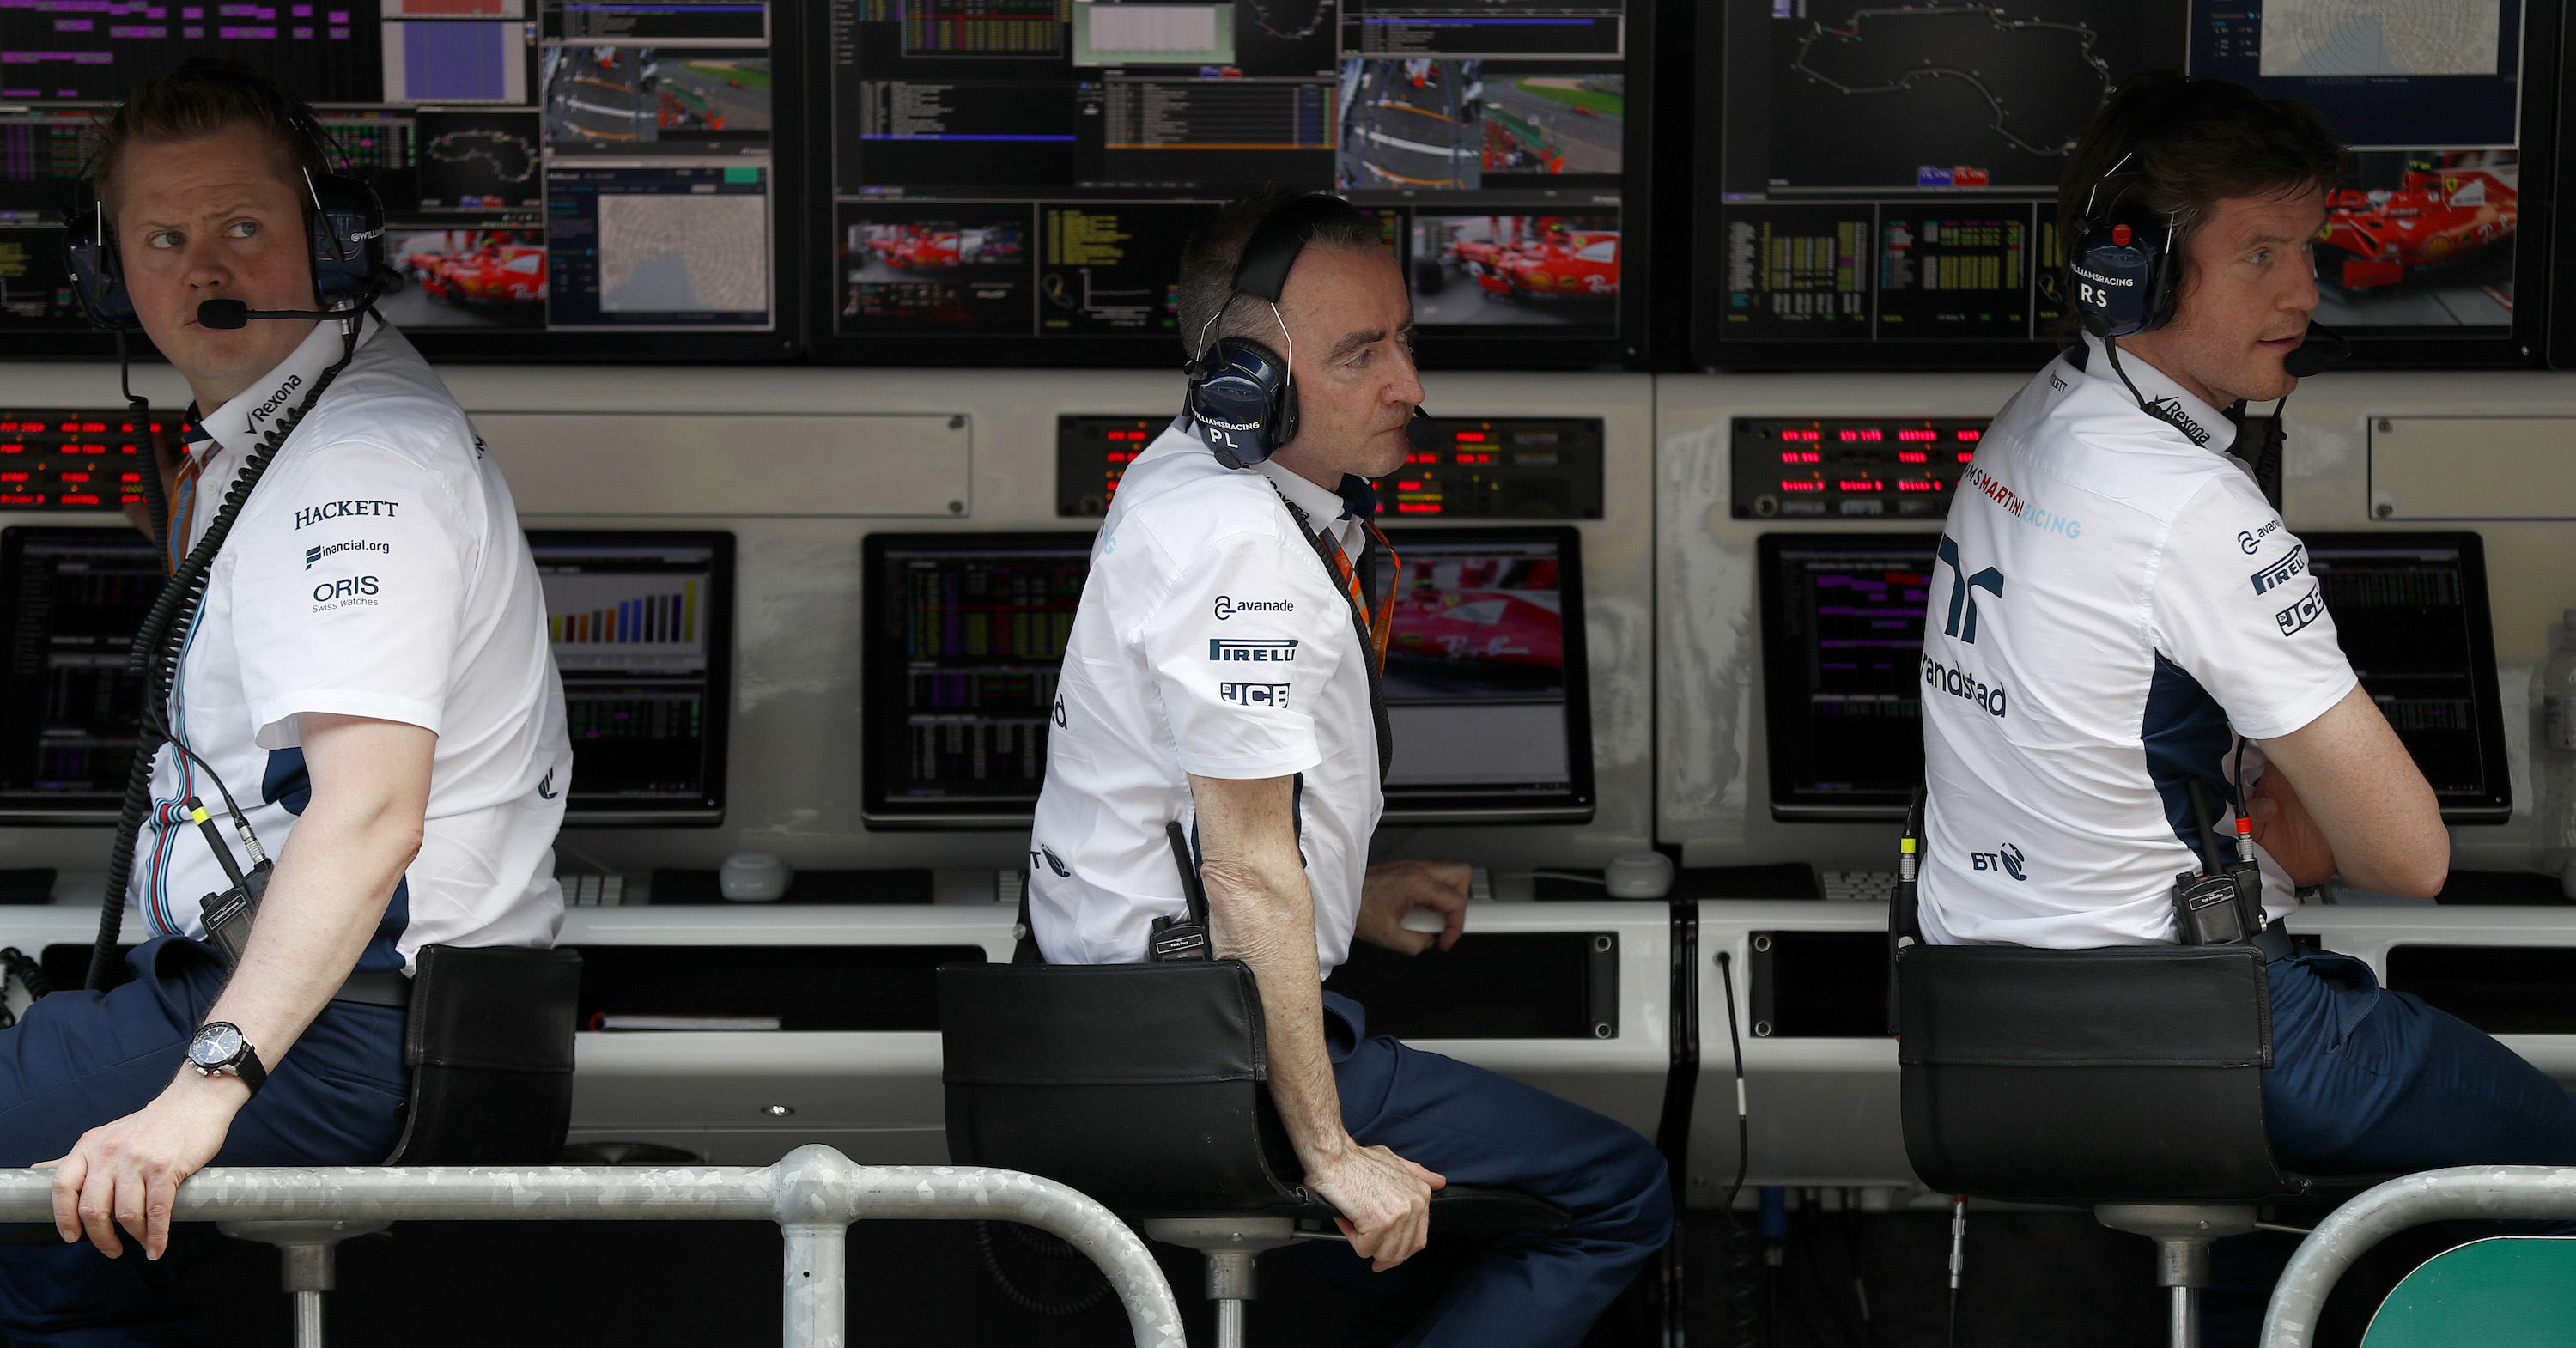 Paddy Lowe and Rob Smedley of Williams Martini Racing, on the pit wall during the 2017 Australian Grand Prix.